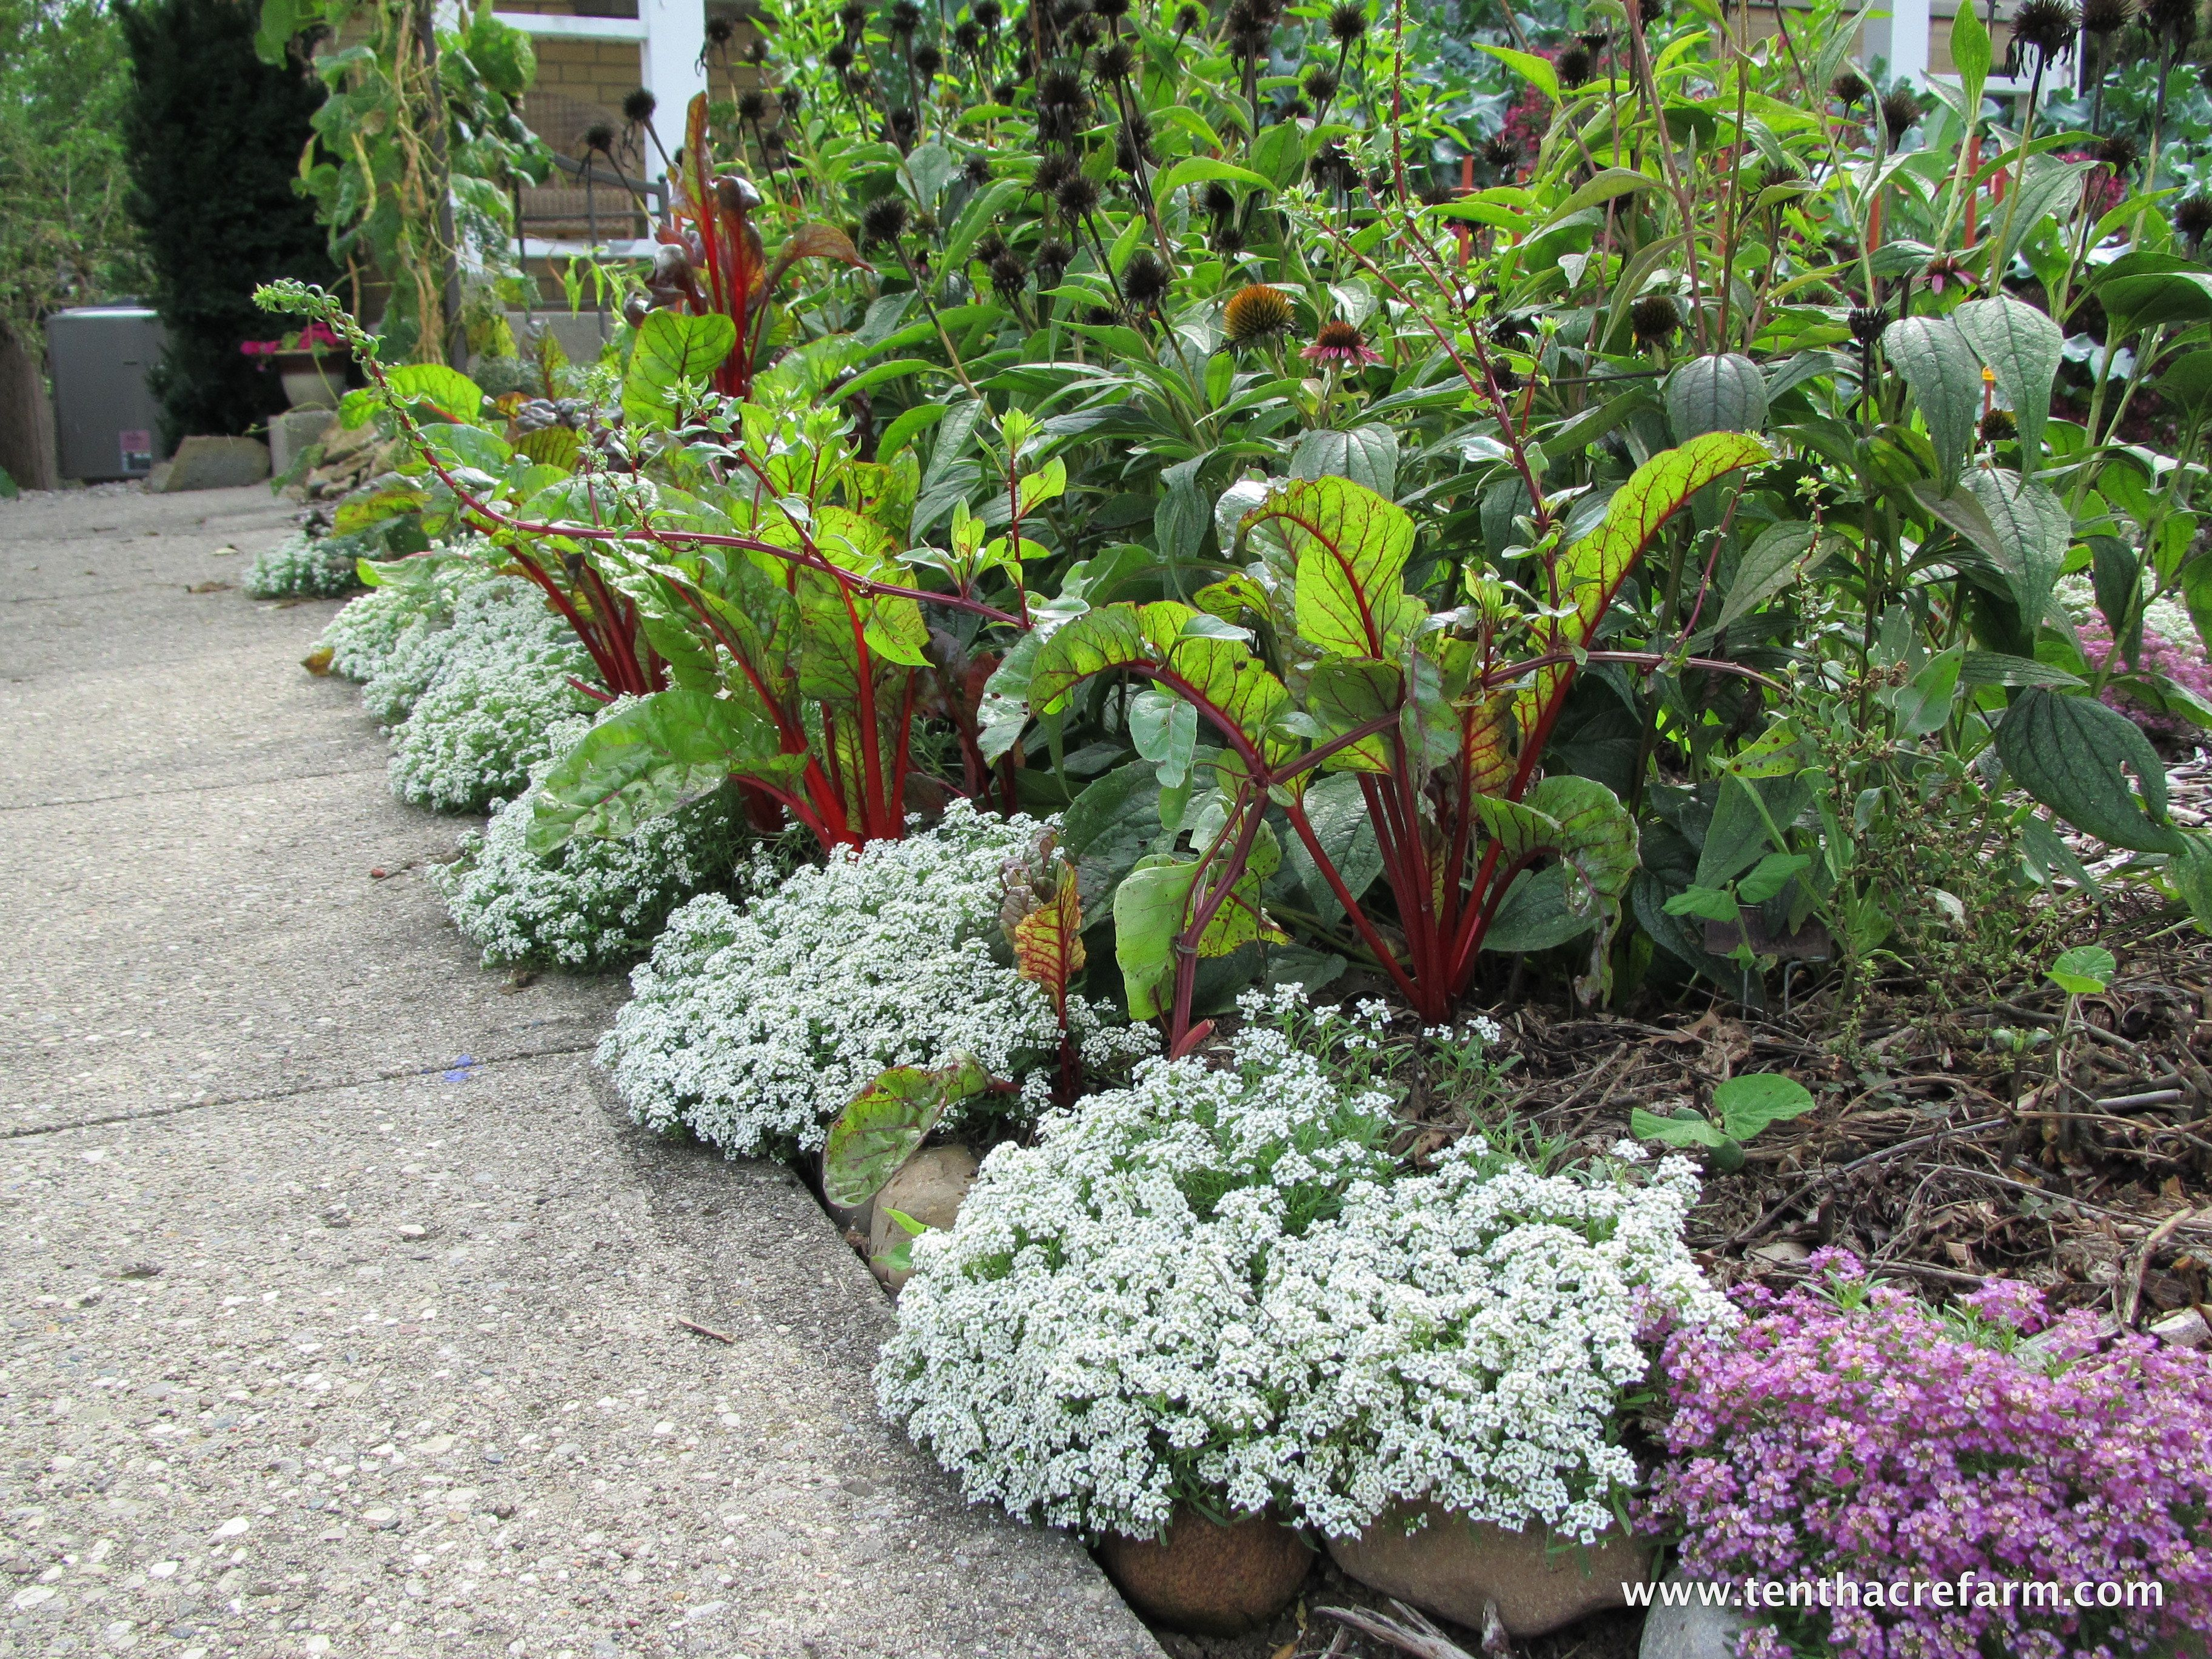 Creative environments landscape co edible gardens - Sweet Alyssum And Swiss Chard Winning Edible Landscaping Combination For Fall